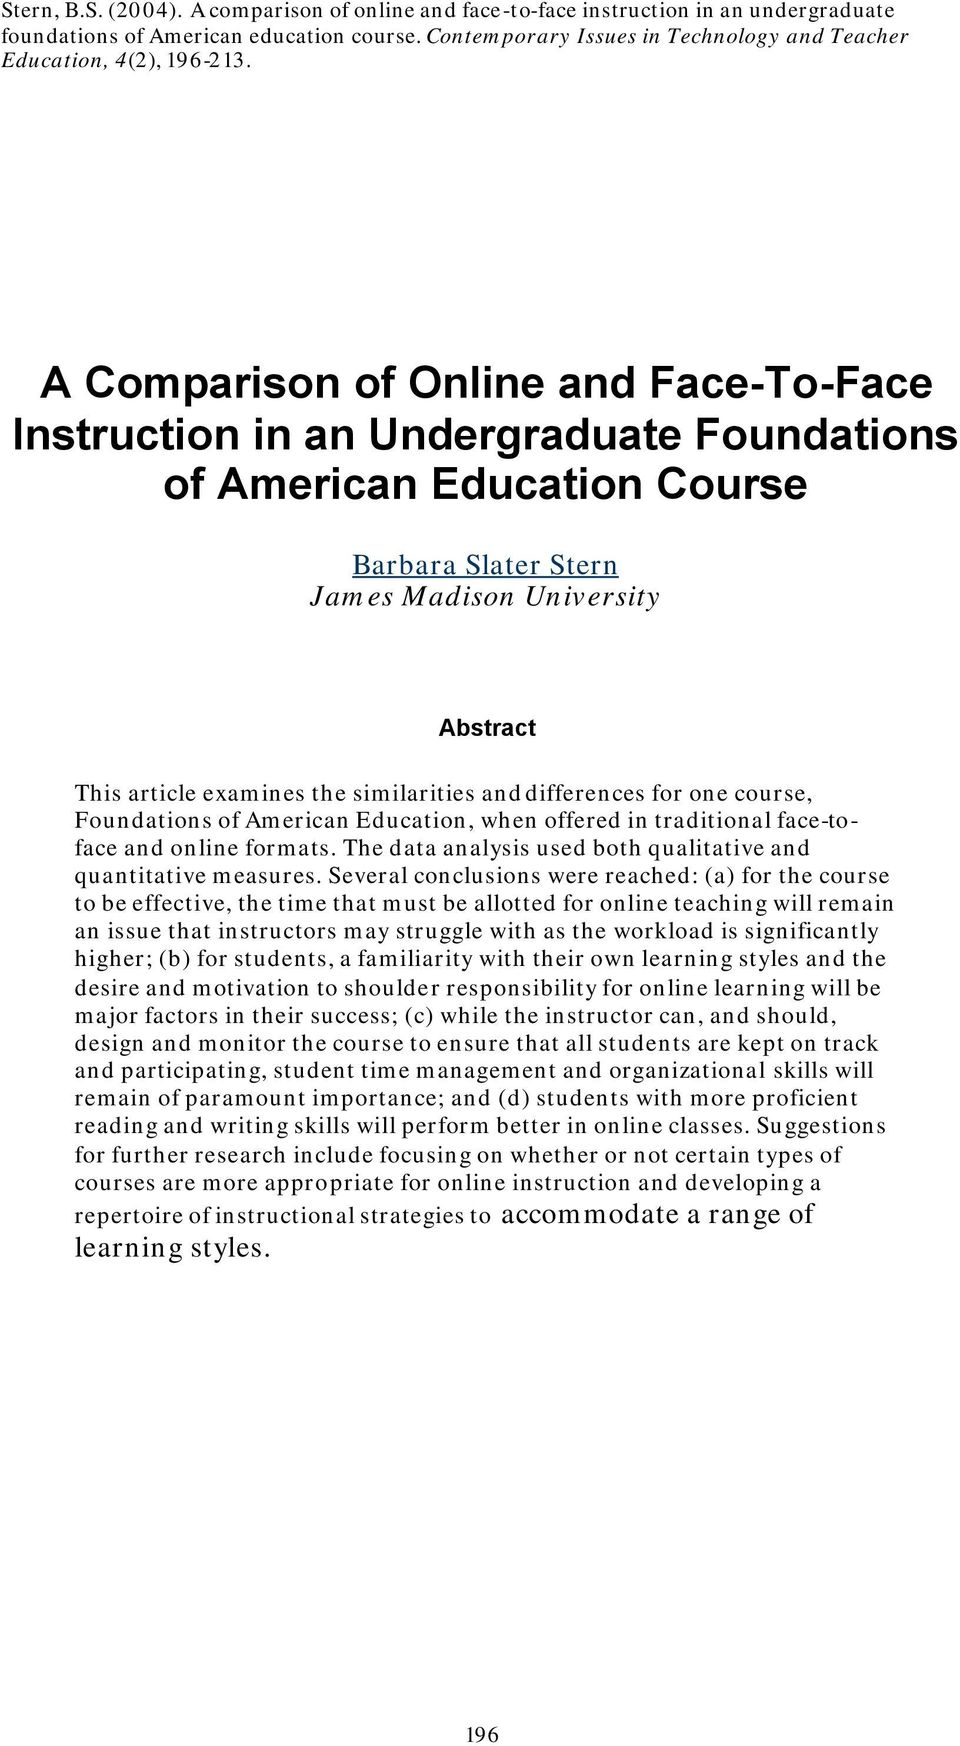 A Comparison of Online and Face-To-Face Instruction in an Undergraduate Foundations of American Education Course Barbara Slater Stern James Madison University Abstract This article examines the